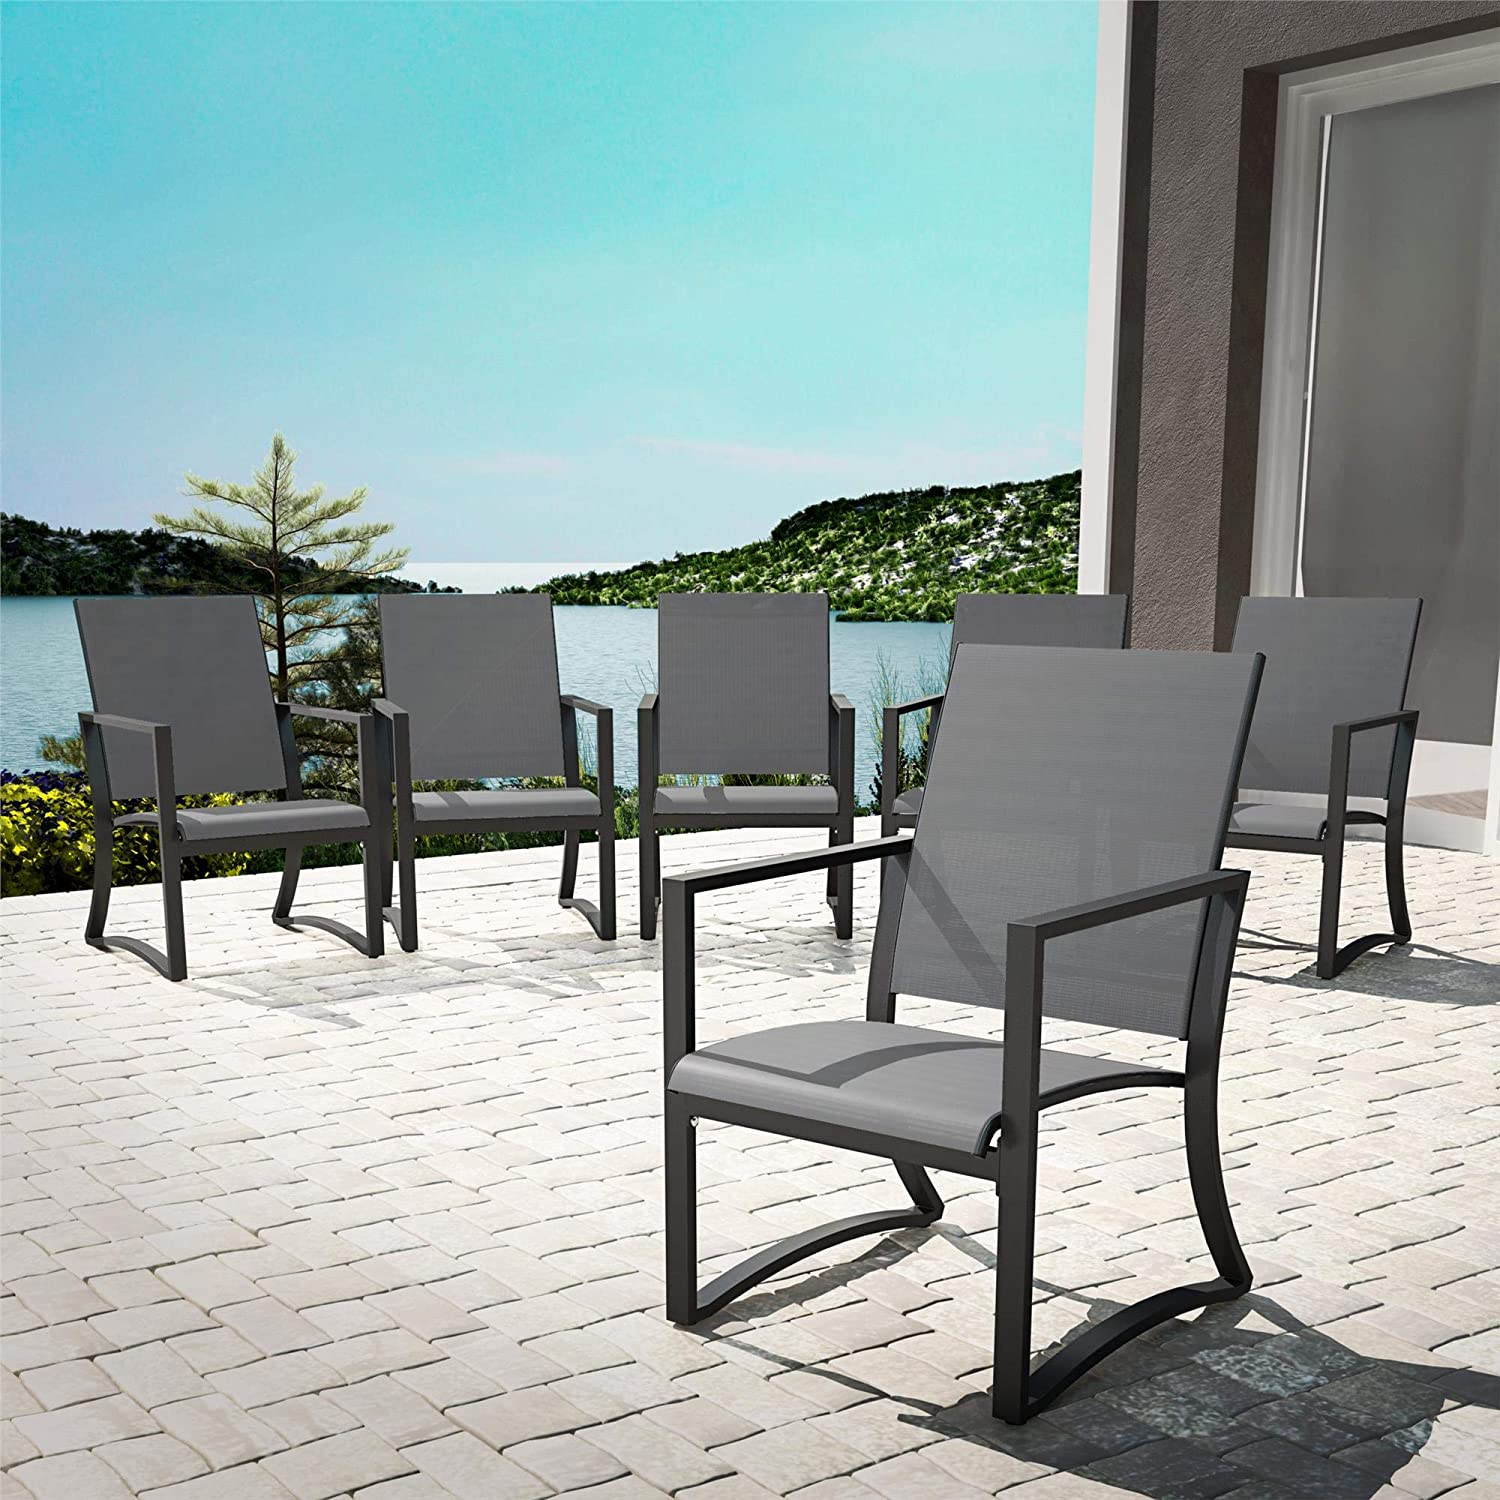 Cosco Outdoor Living 88681LGCE Cosco Outdoor Furniture Dining Chairs, Charcoal: Garden & Outdoor